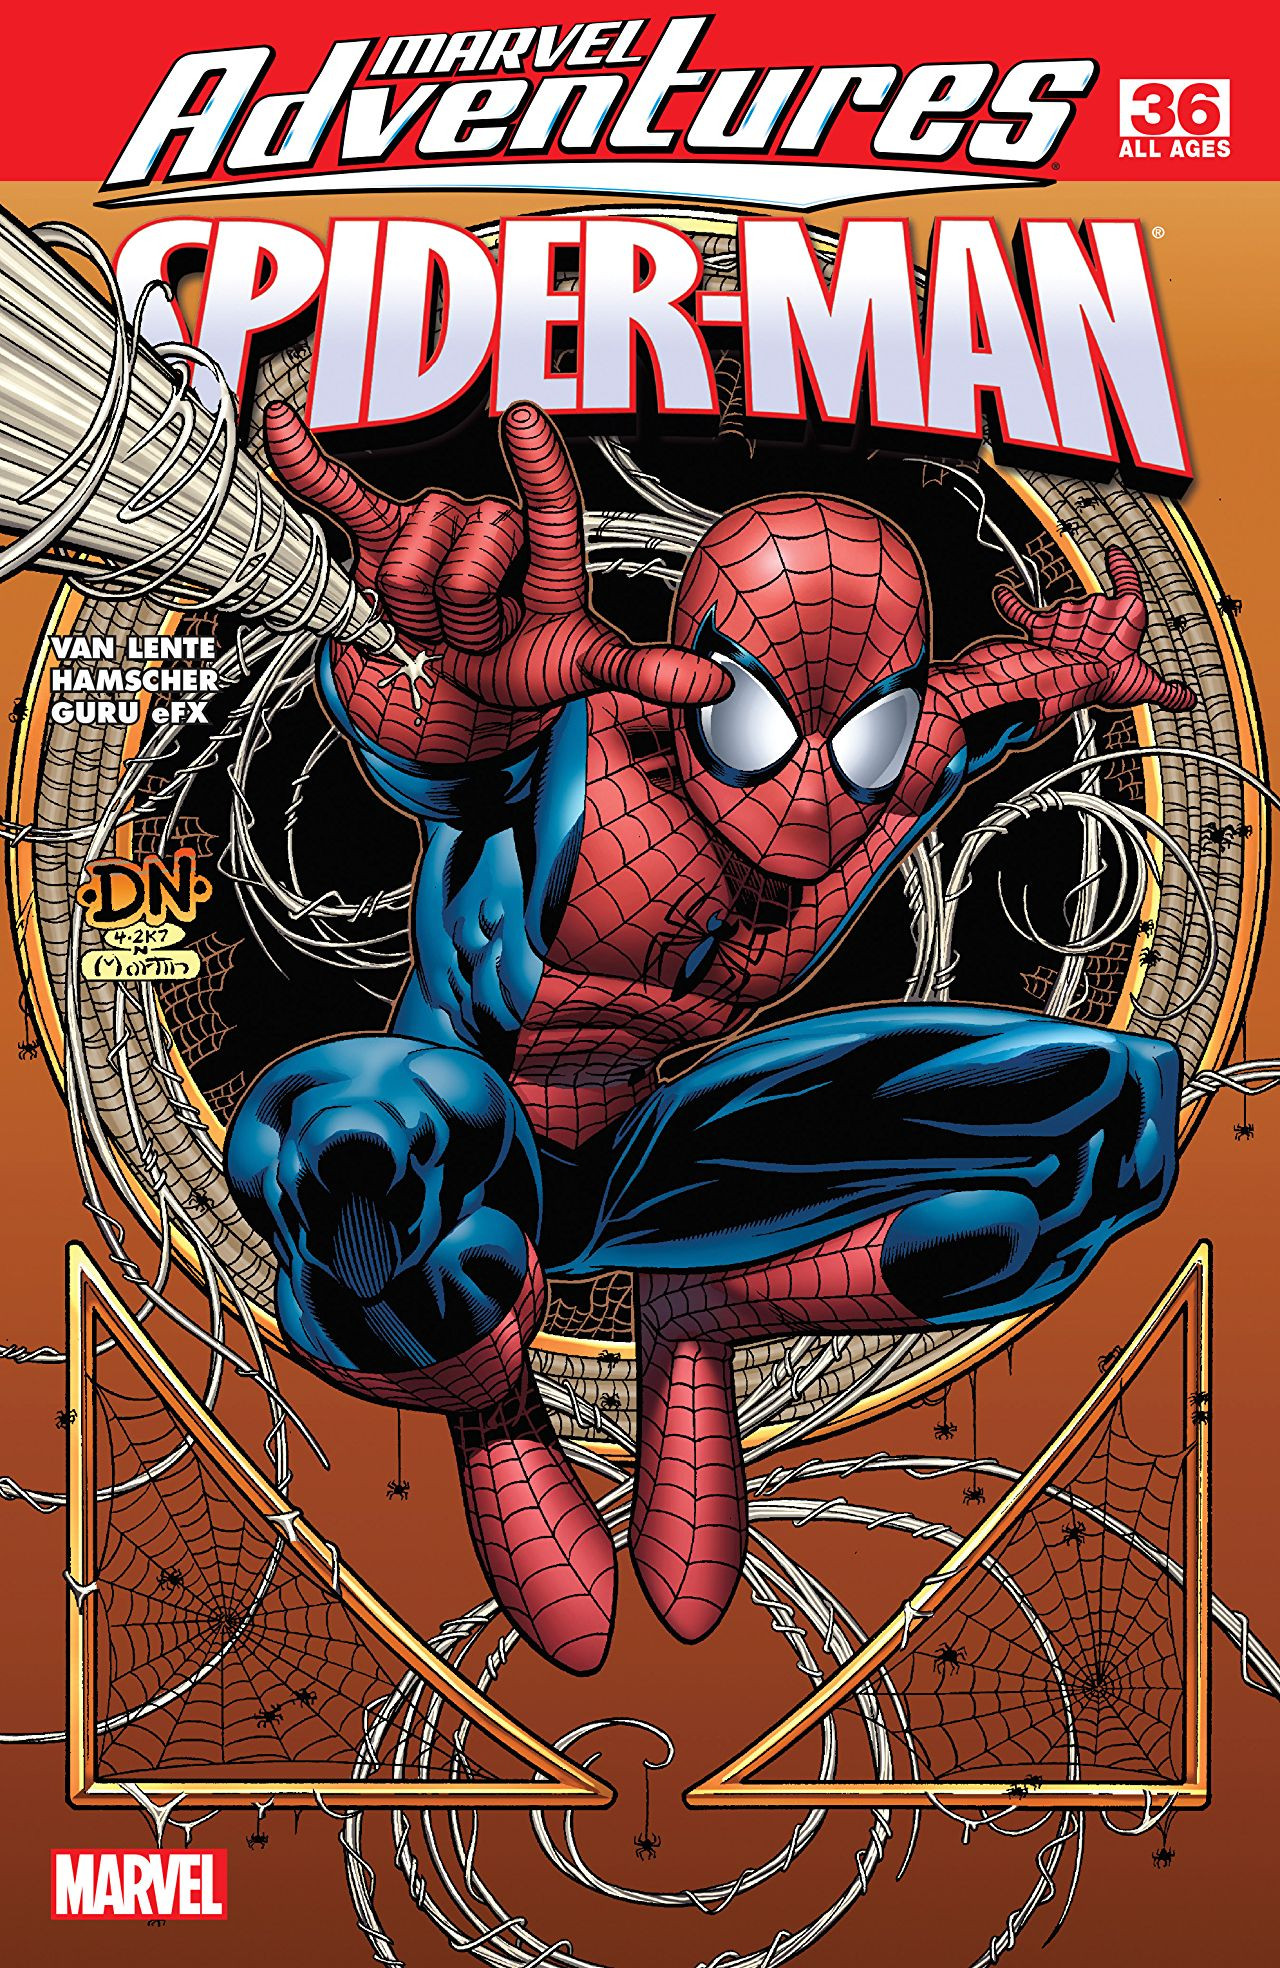 Marvel Adventures: Spider-Man Vol 1 36